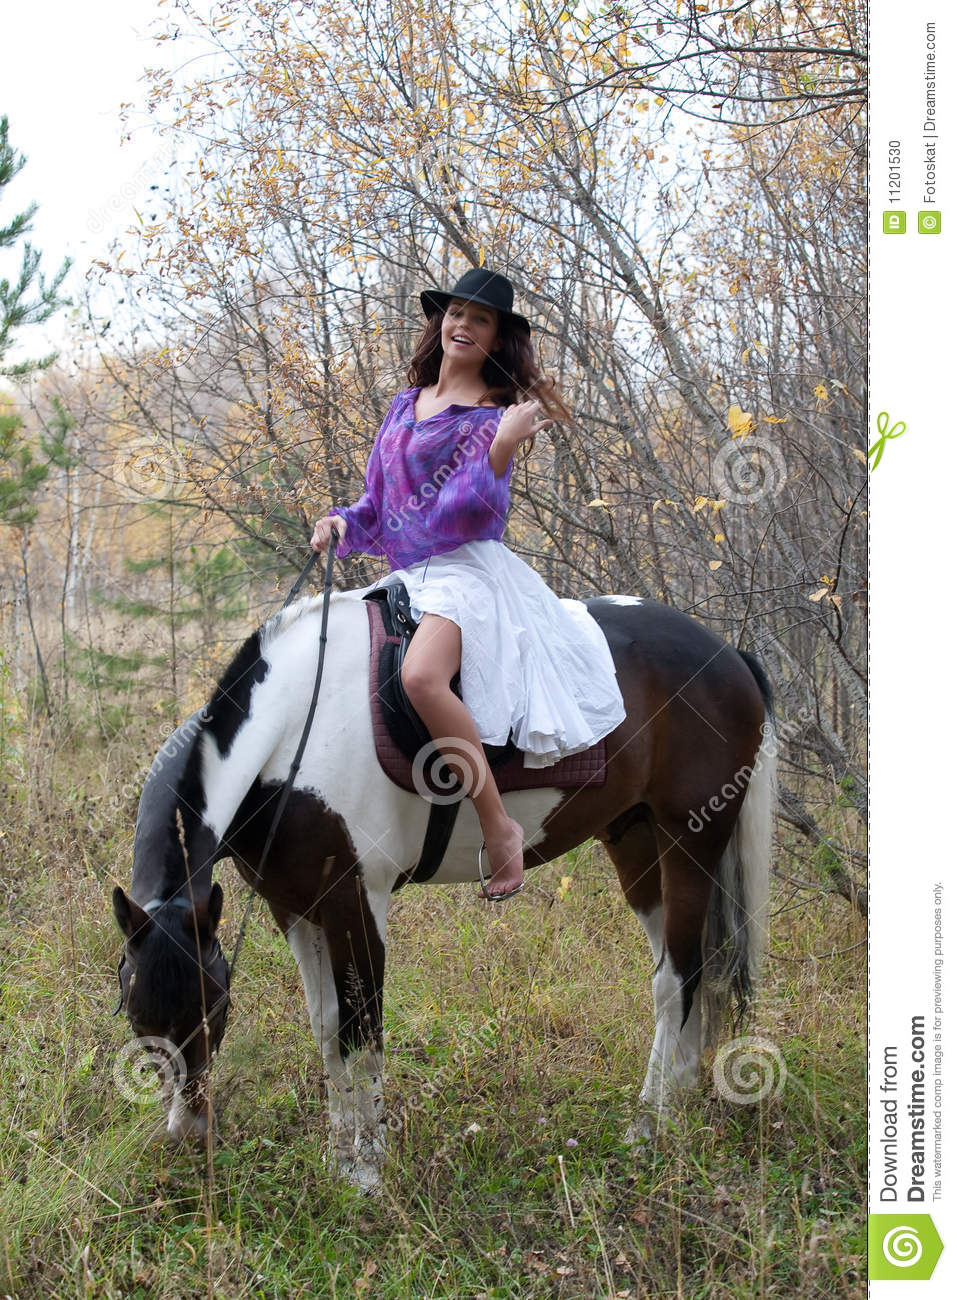 https://thumbs.dreamstime.com/z/young-woman-horse-11201530.jpg